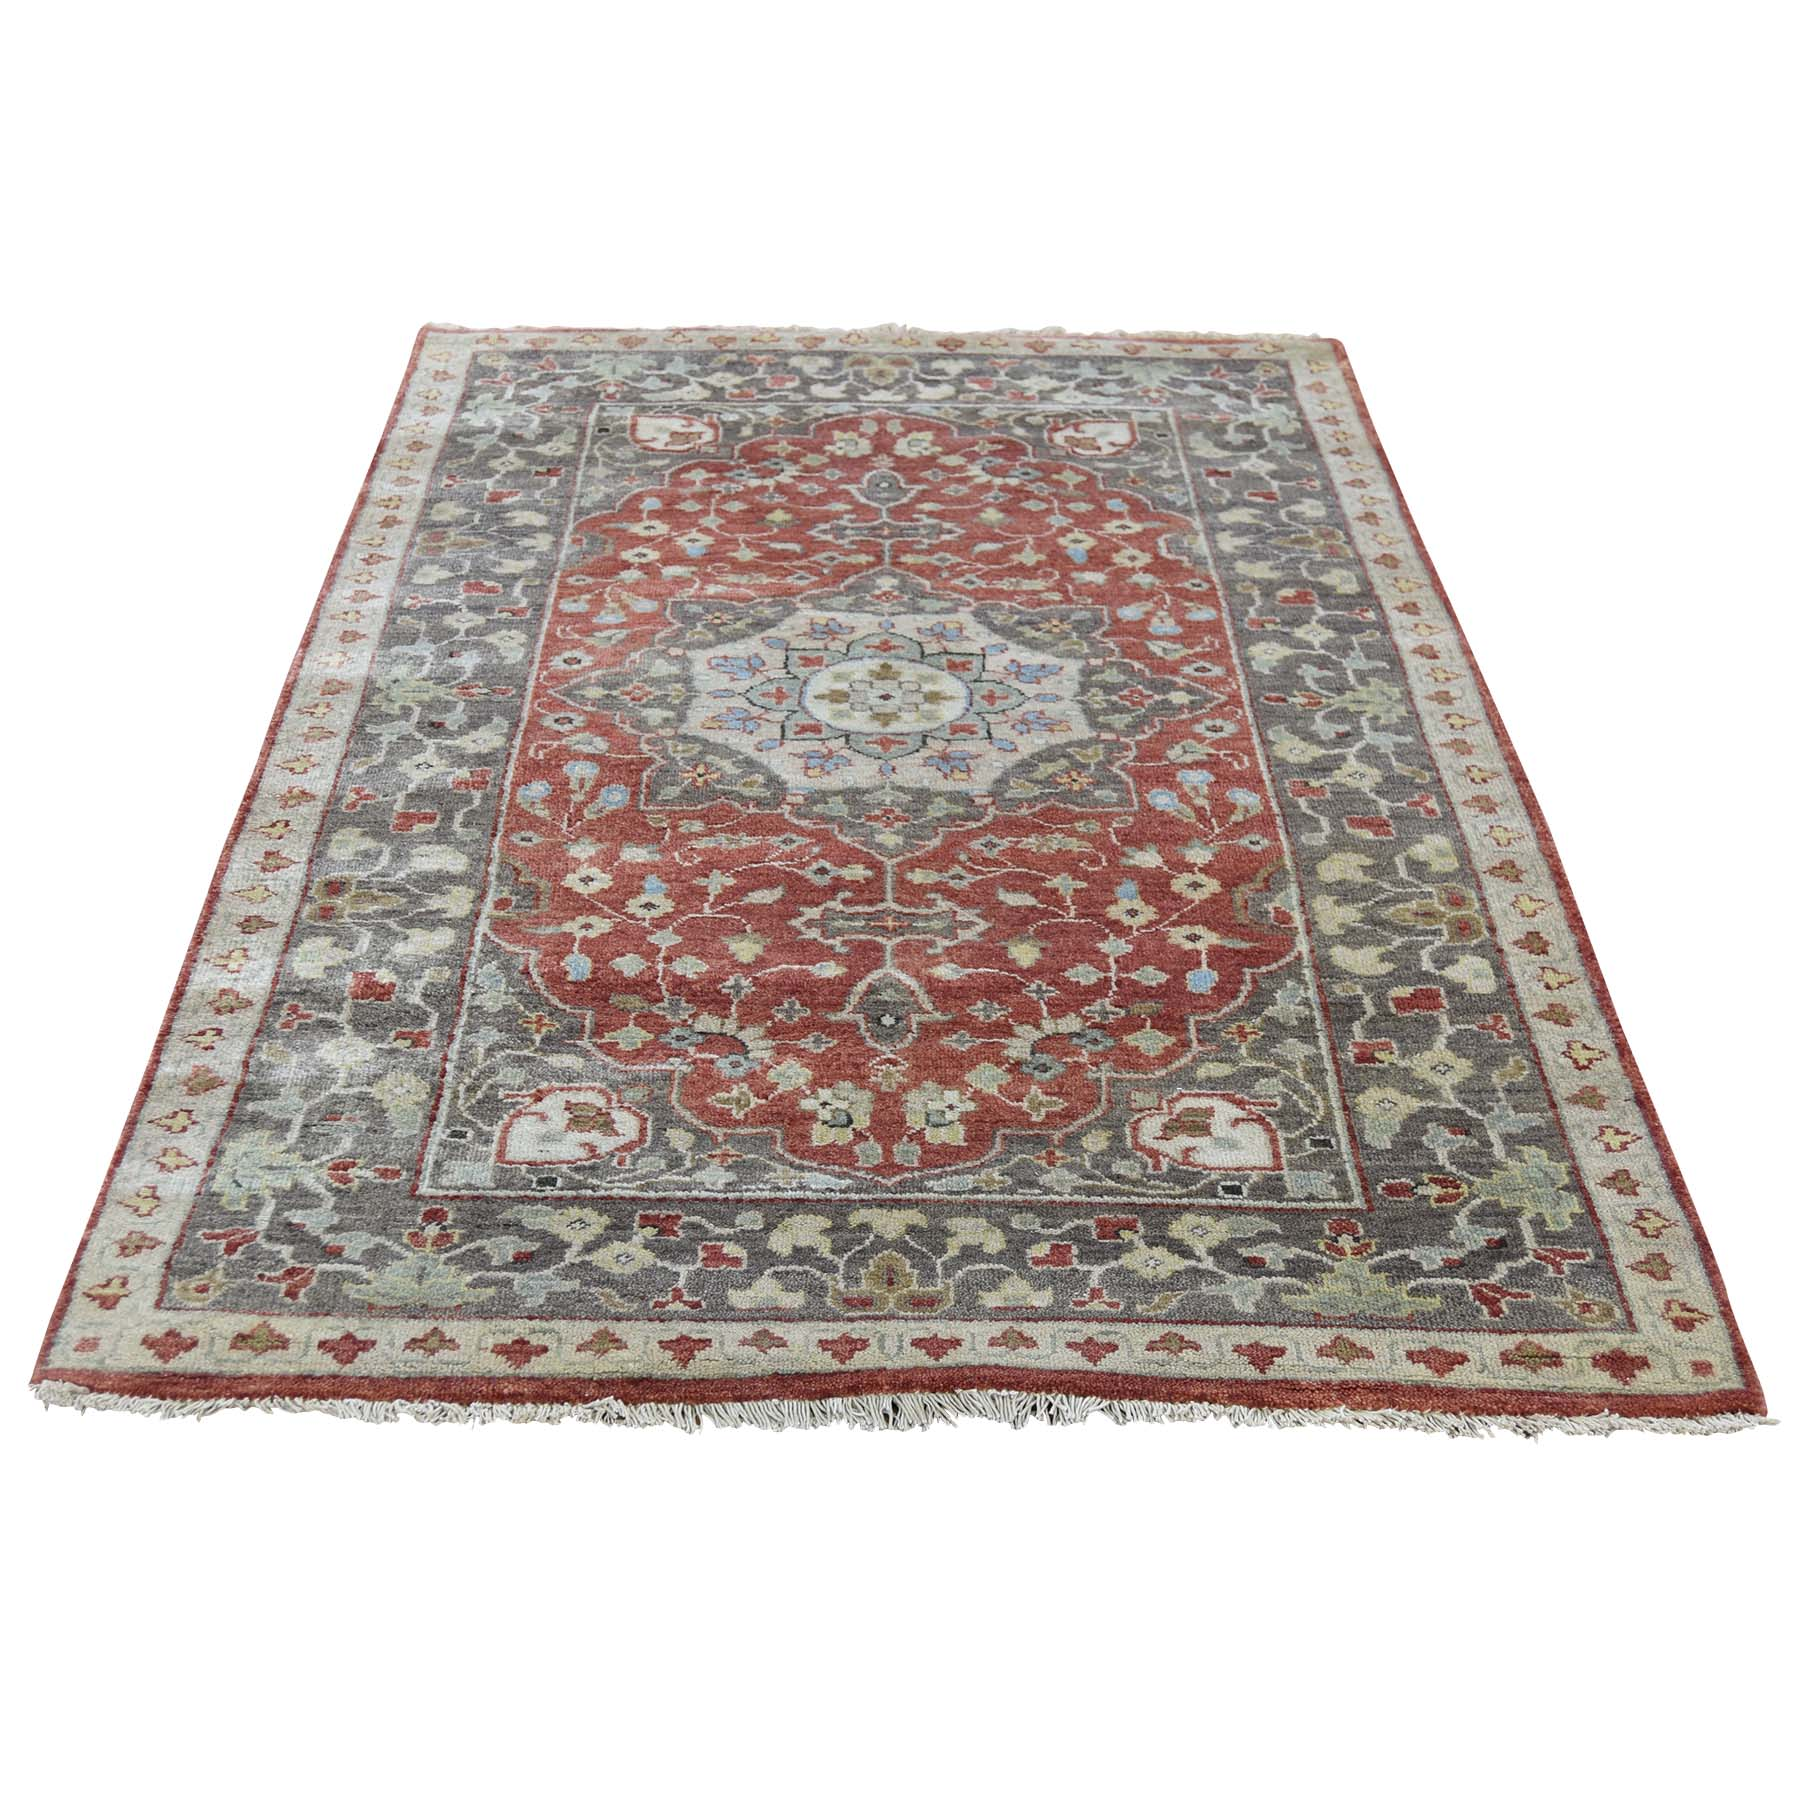 3'X5' Antiqued Haji Jalili Re-Creation Hand-Knotted Oriental Rug moad0e0d